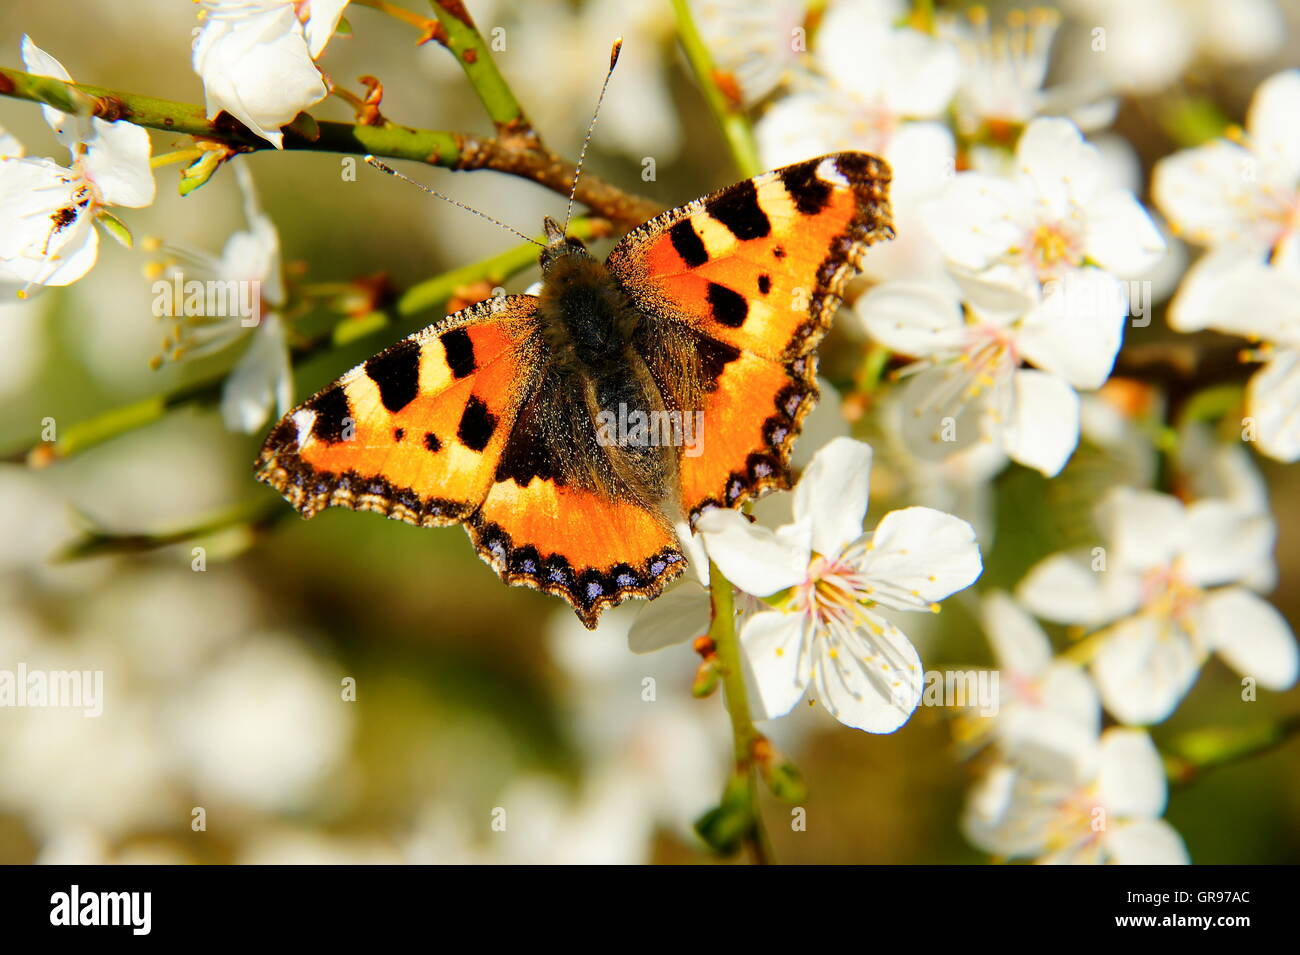 Small Tortoiseshell Butterfly In The Spring On Hawthorn Flowers - Stock Image